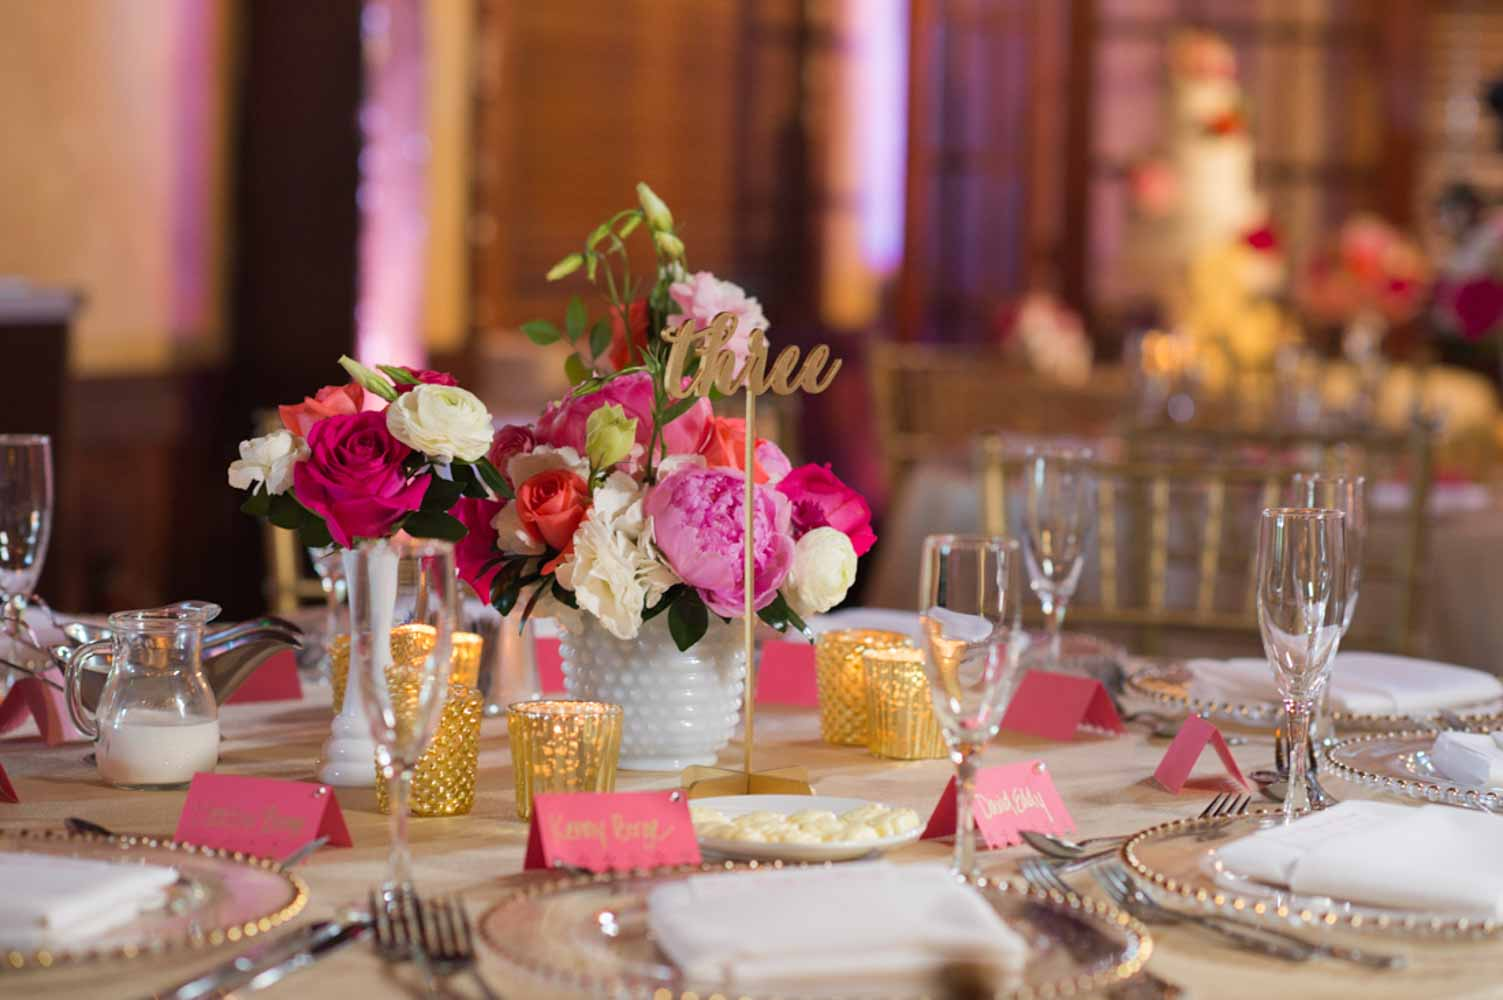 vibrant floral wedding centerpiece on tan linens